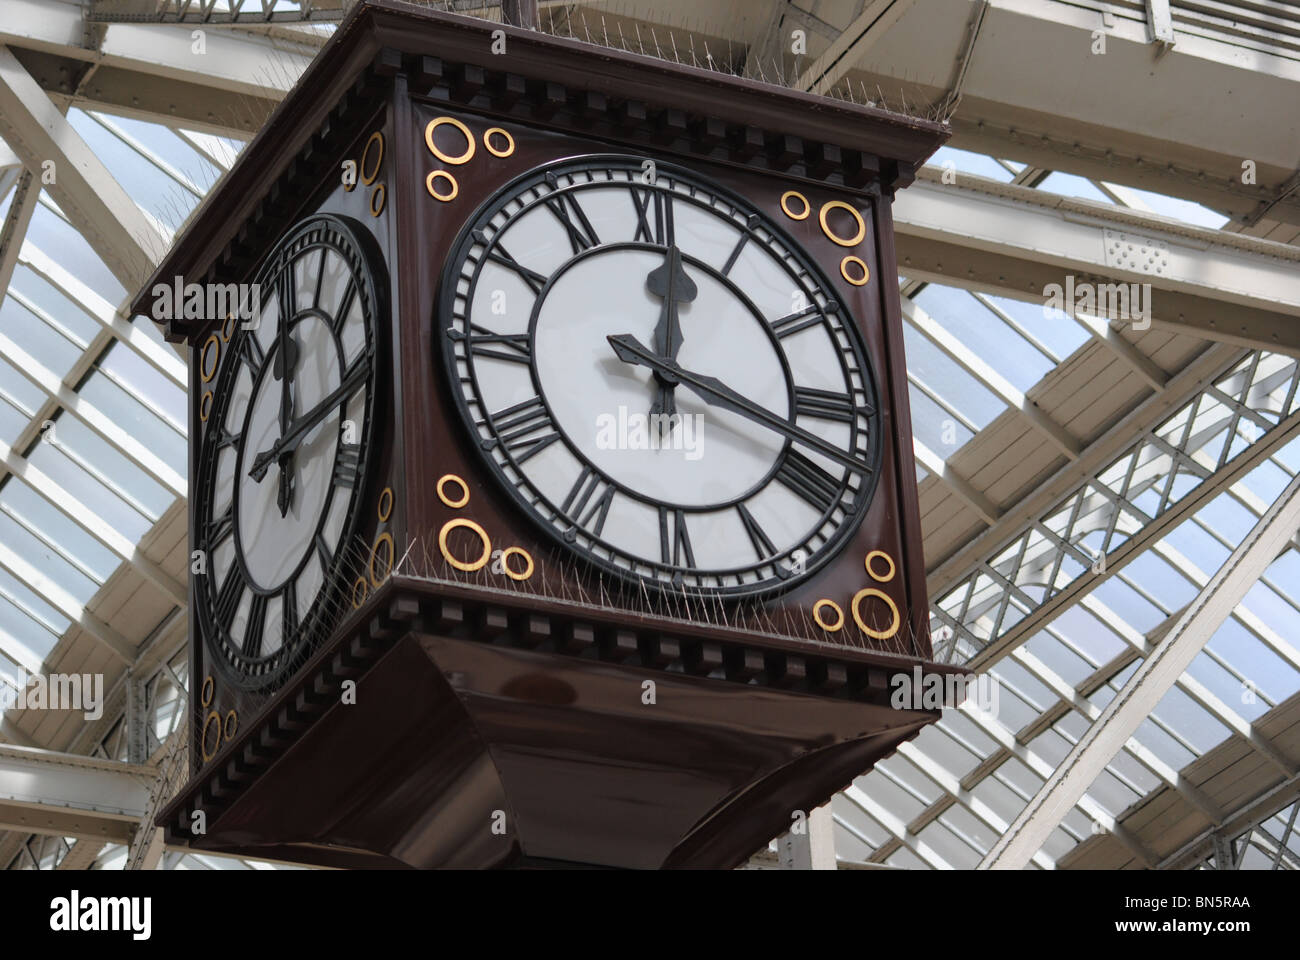 The main clock in Glasgow Central Railway Station - Stock Image